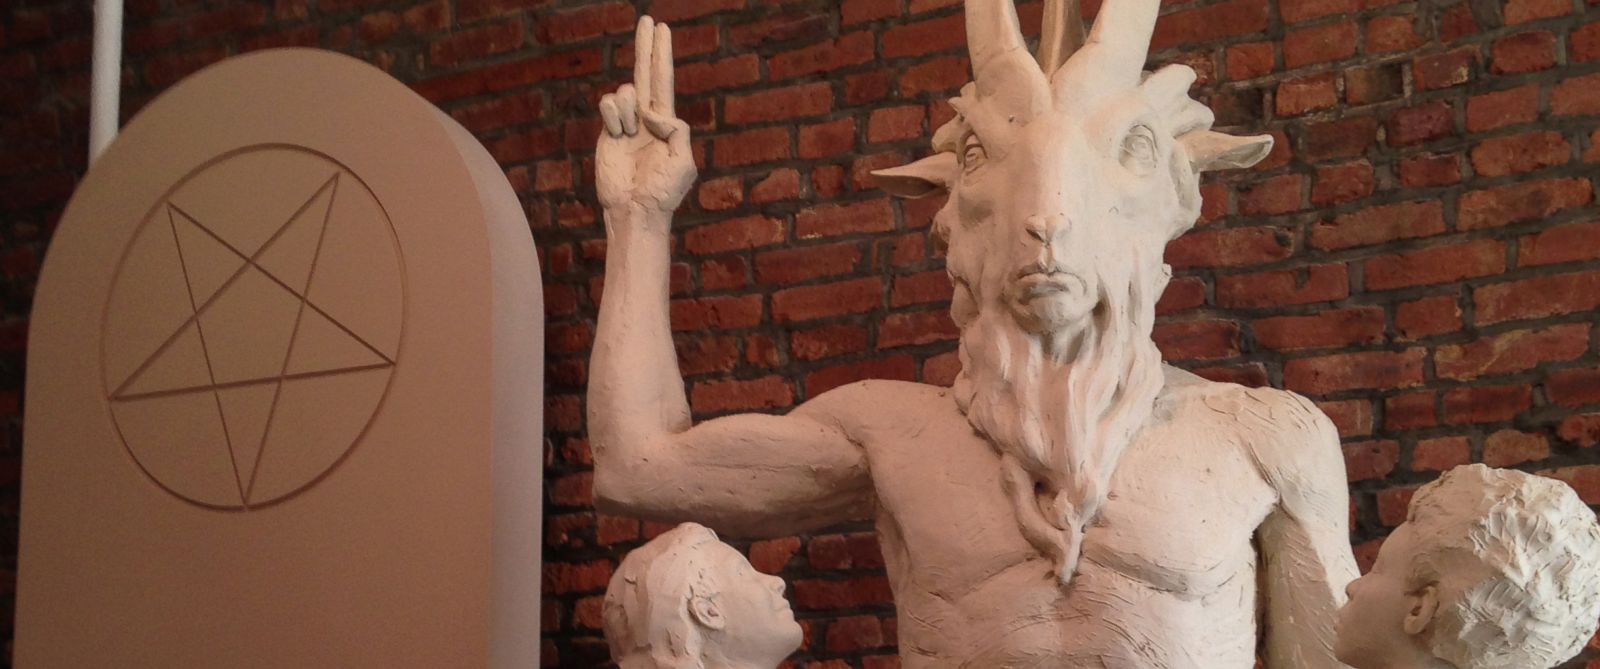 """PHOTO: Unfinished statue of Satan as Baphomet, a """"goat-headed, angel-winged, androgynous creature."""""""